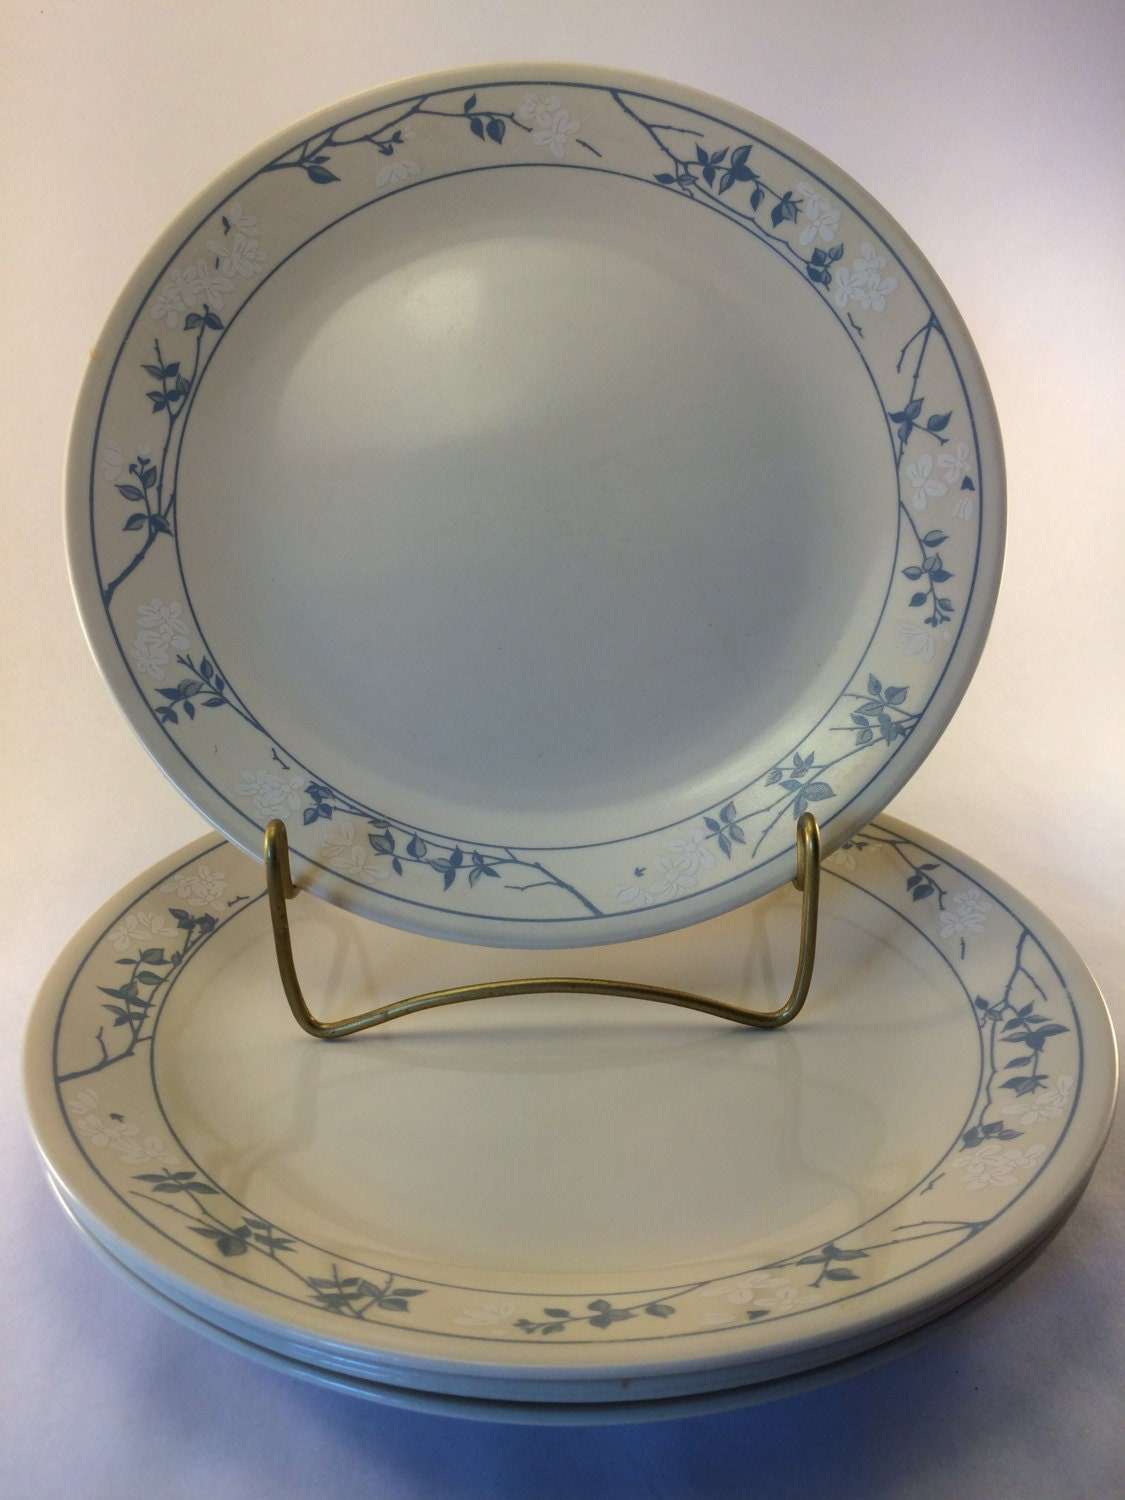 Corelle Plates First Of Spring SALE Dinner Plates 10